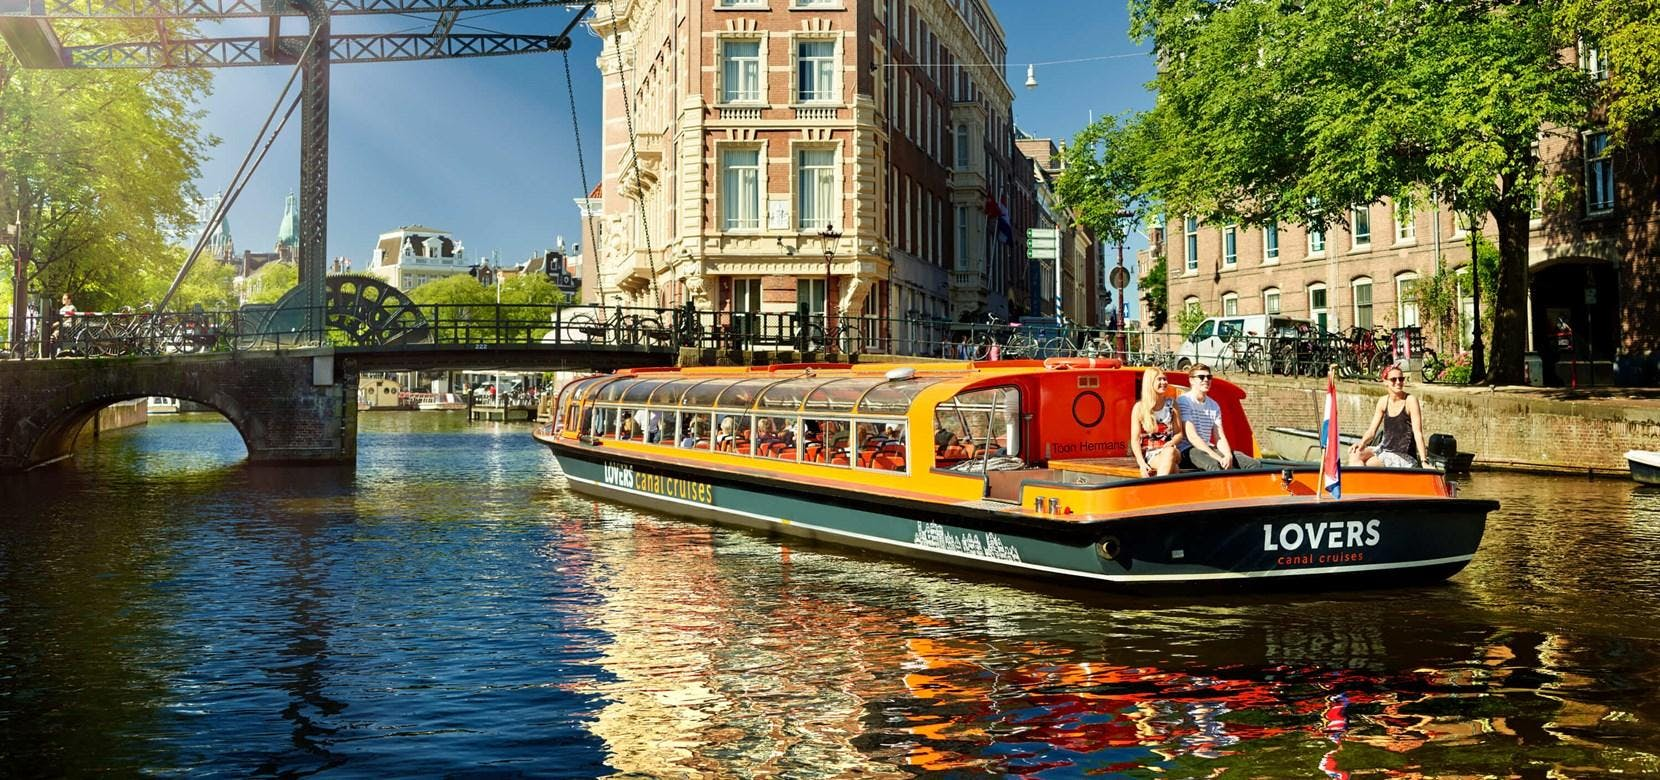 2-3 hrs Amsterdam Canal Cruise & Walking Tour